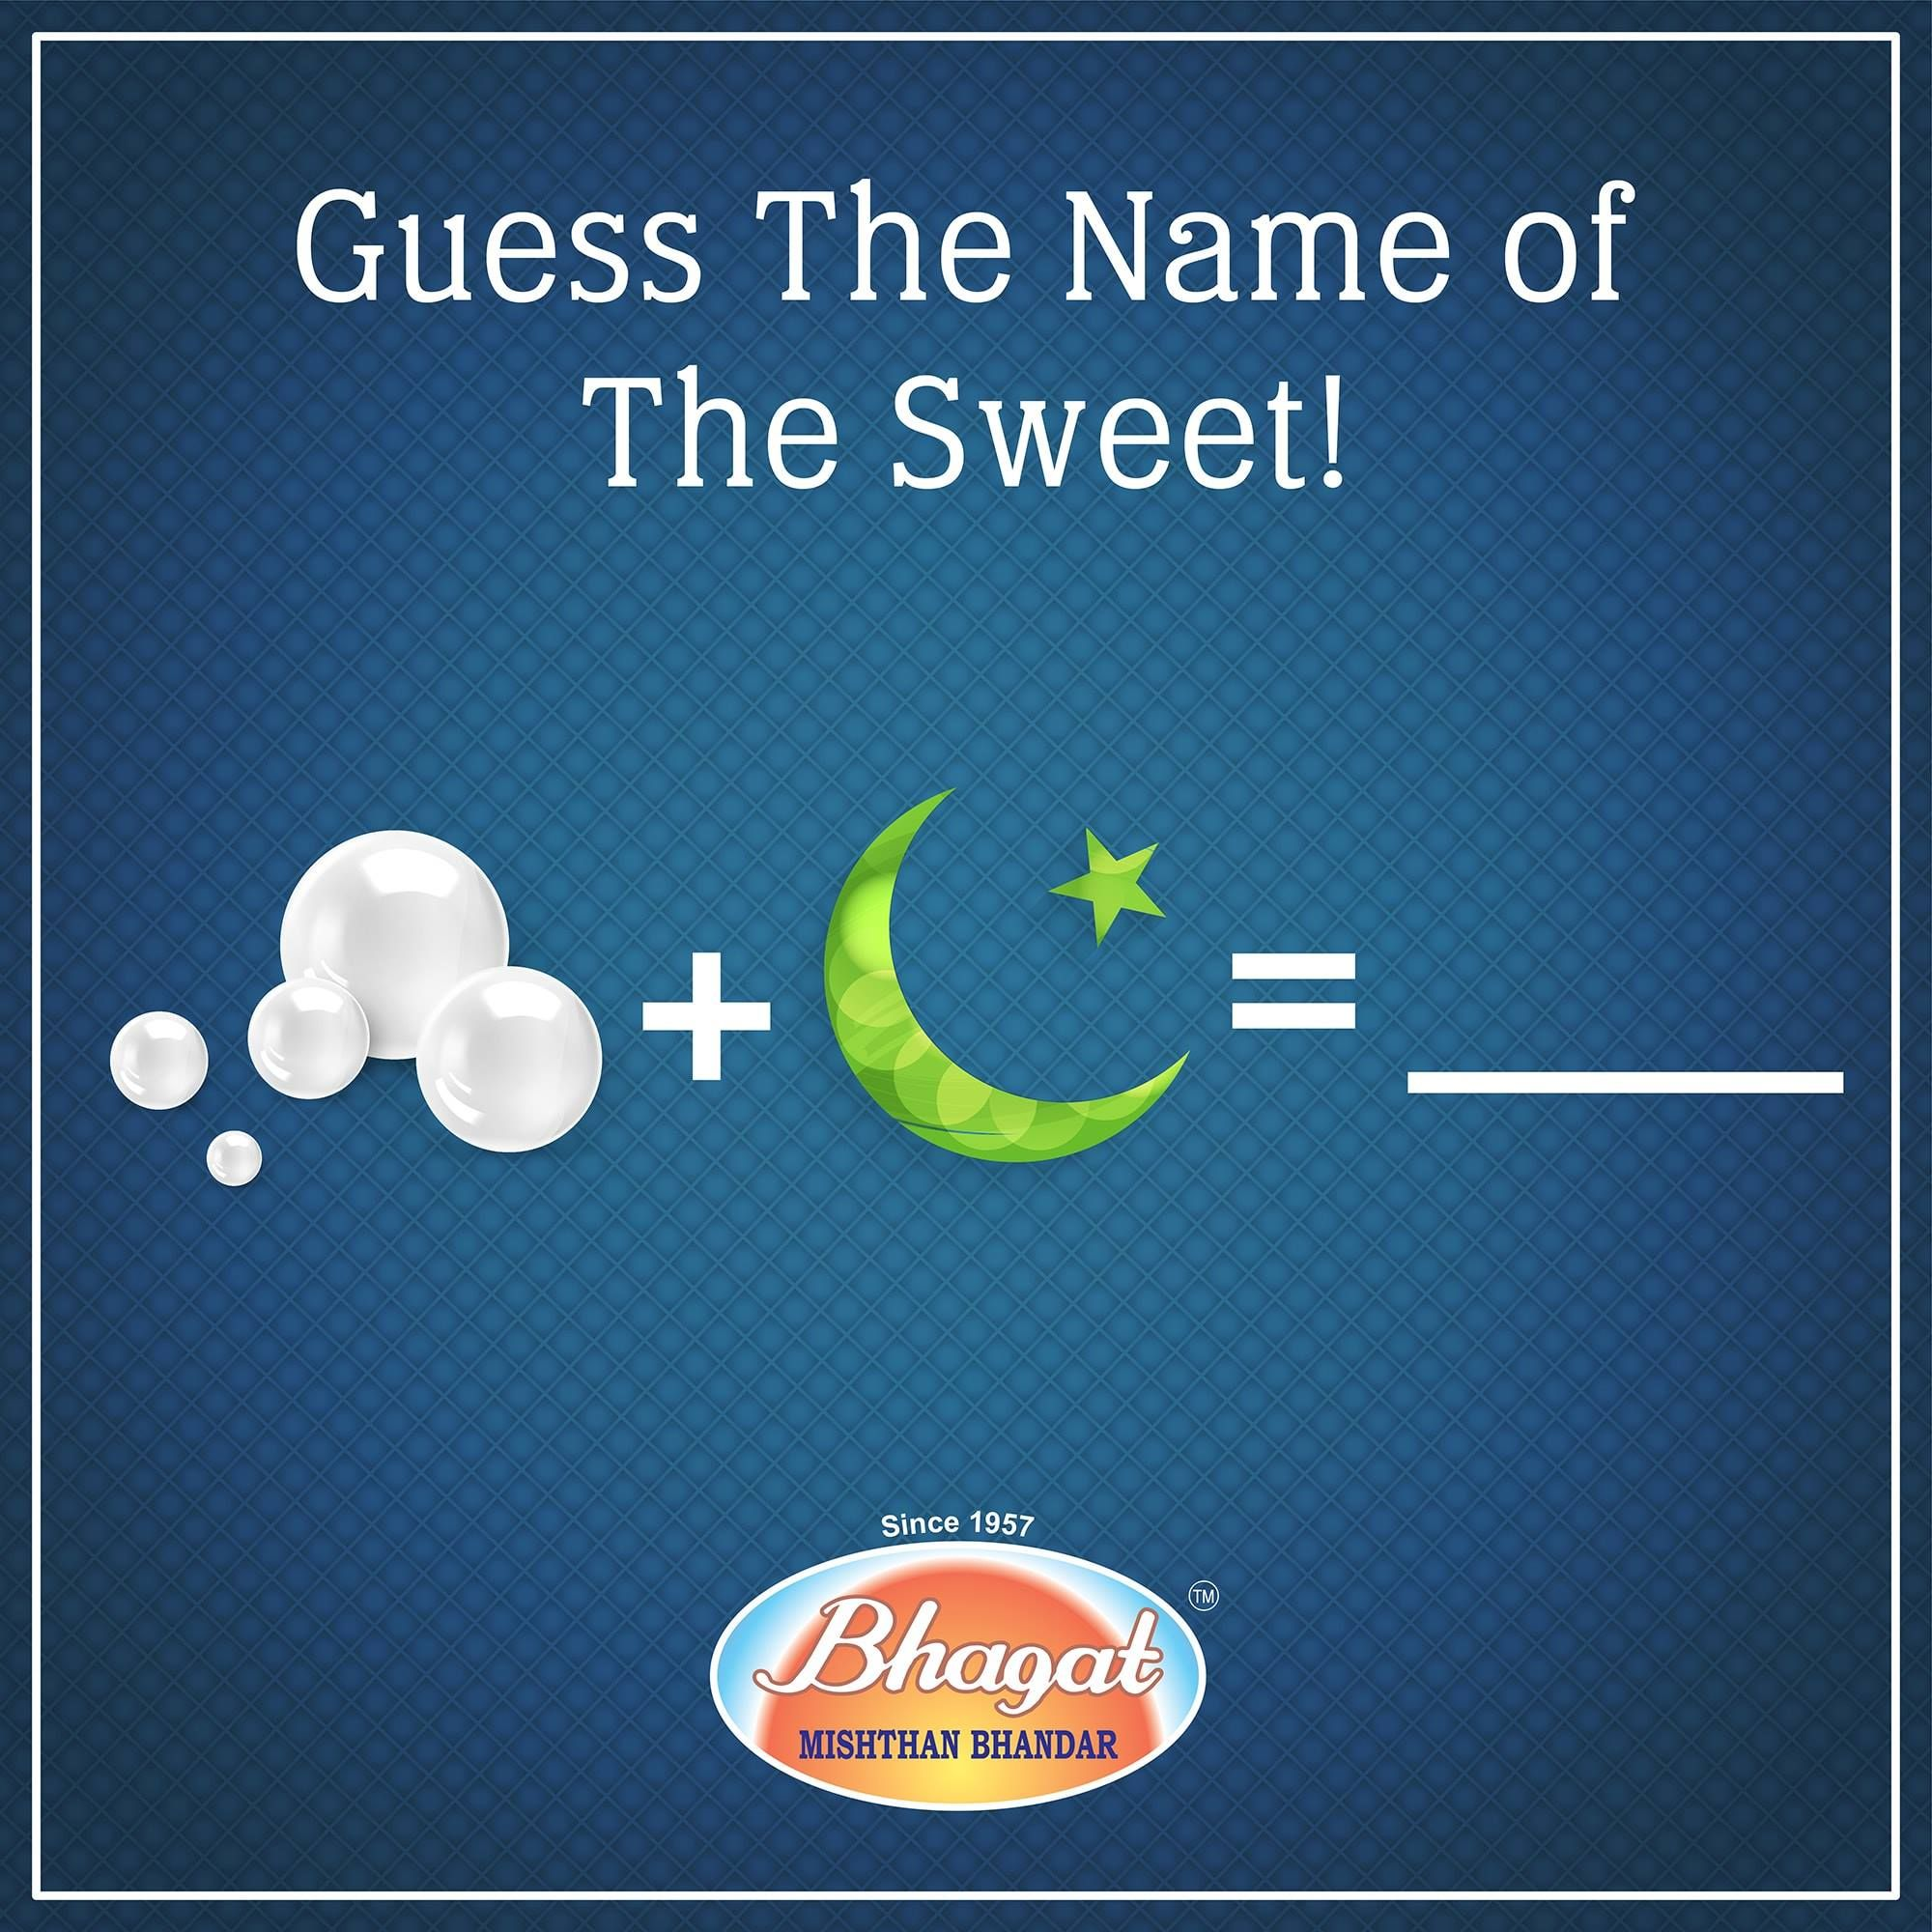 guess the name of this famous sweet and let us know in the comments